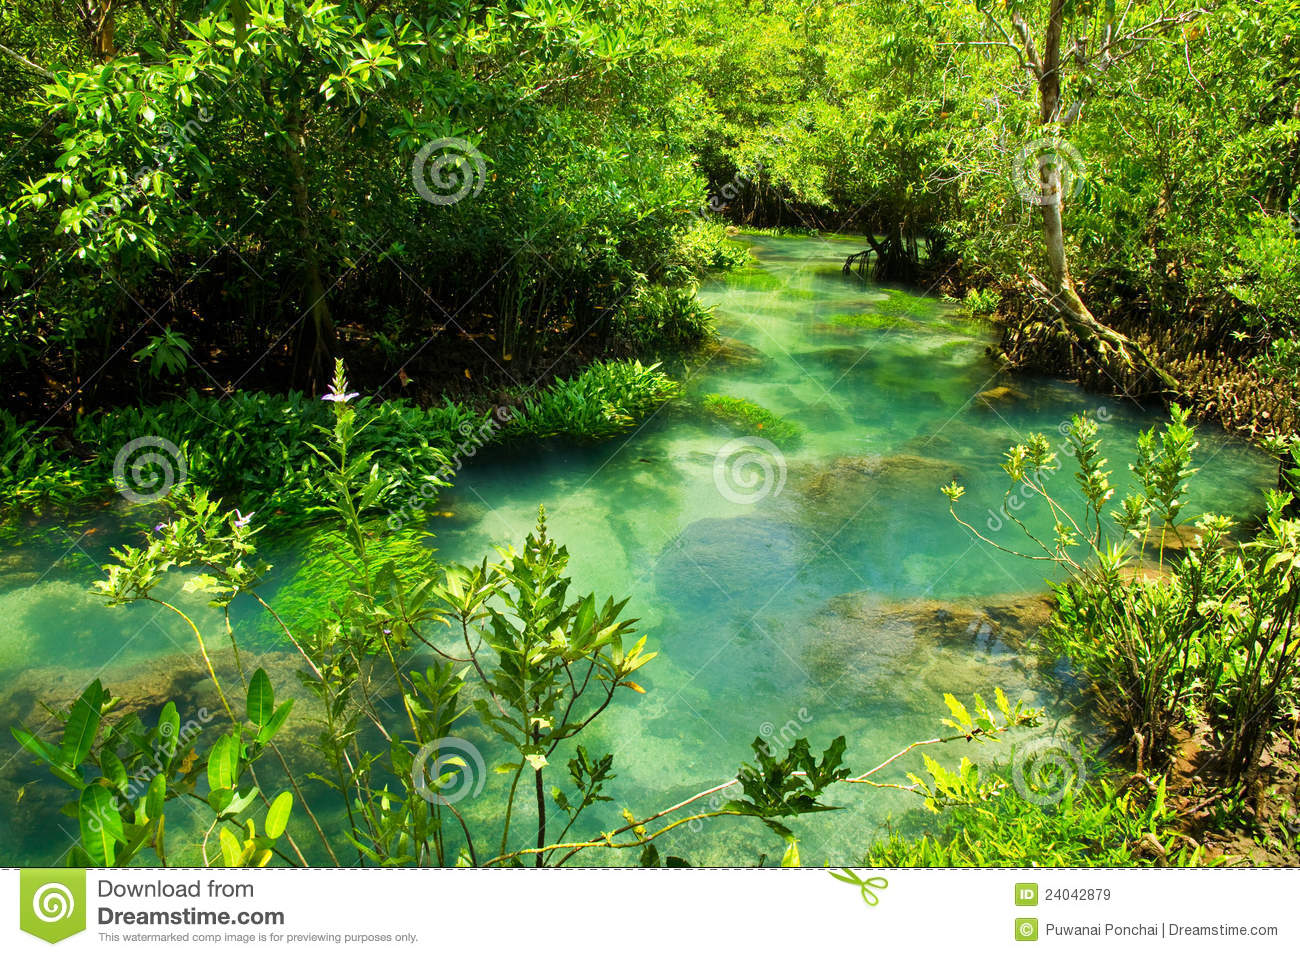 The root and crystal stream